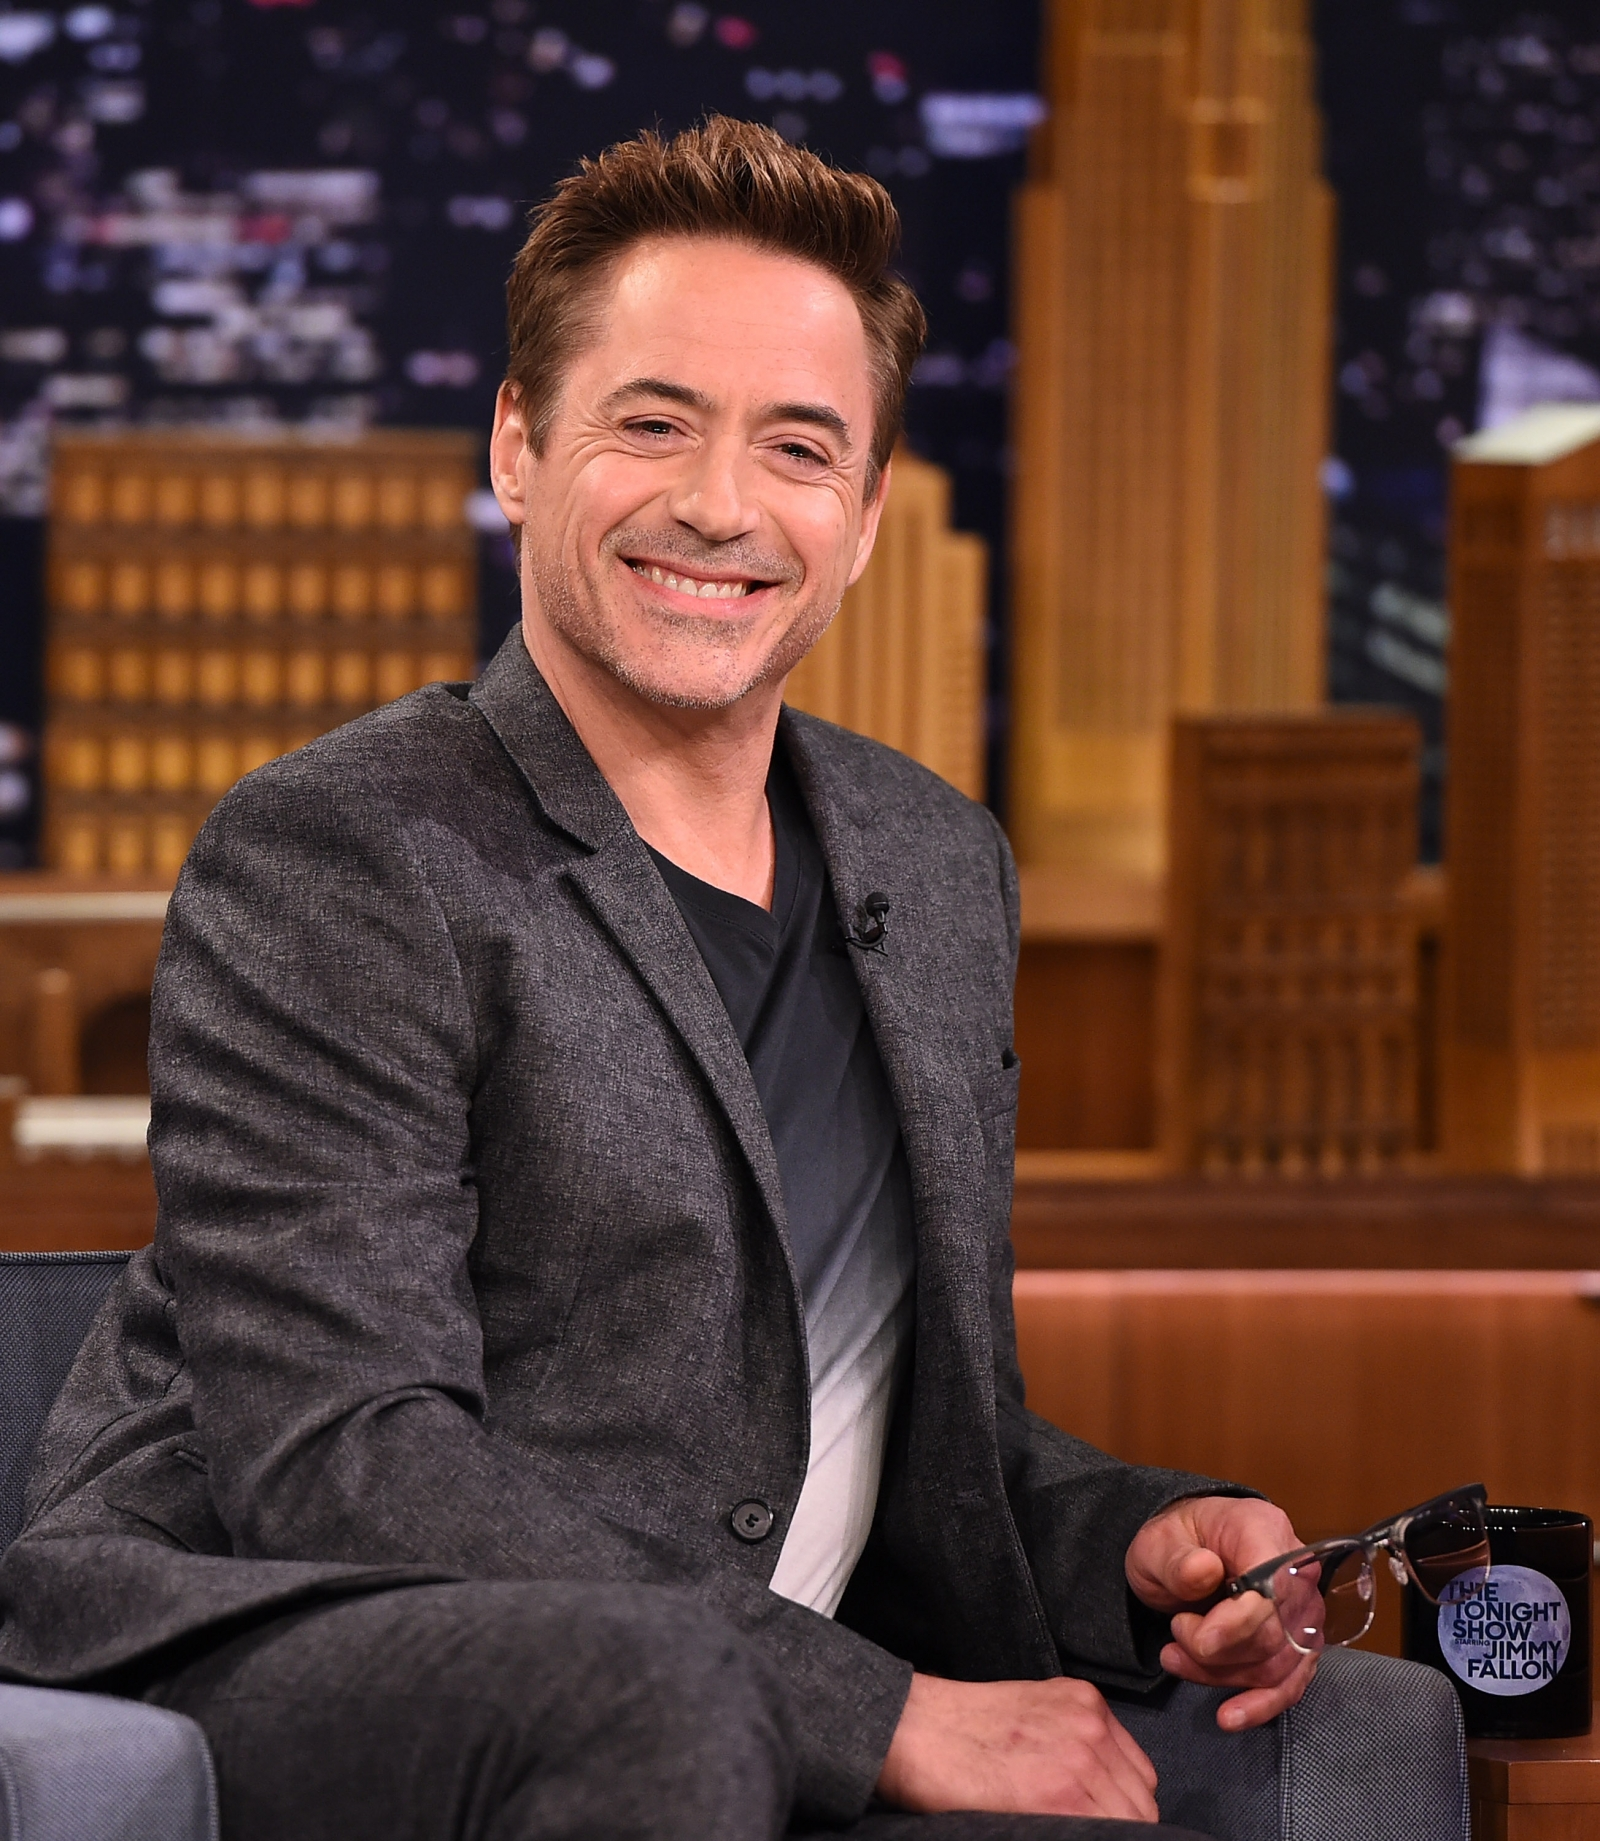 Robert Downey: Robert Downey Jr Turns 52: Top Facts About The Actor Every